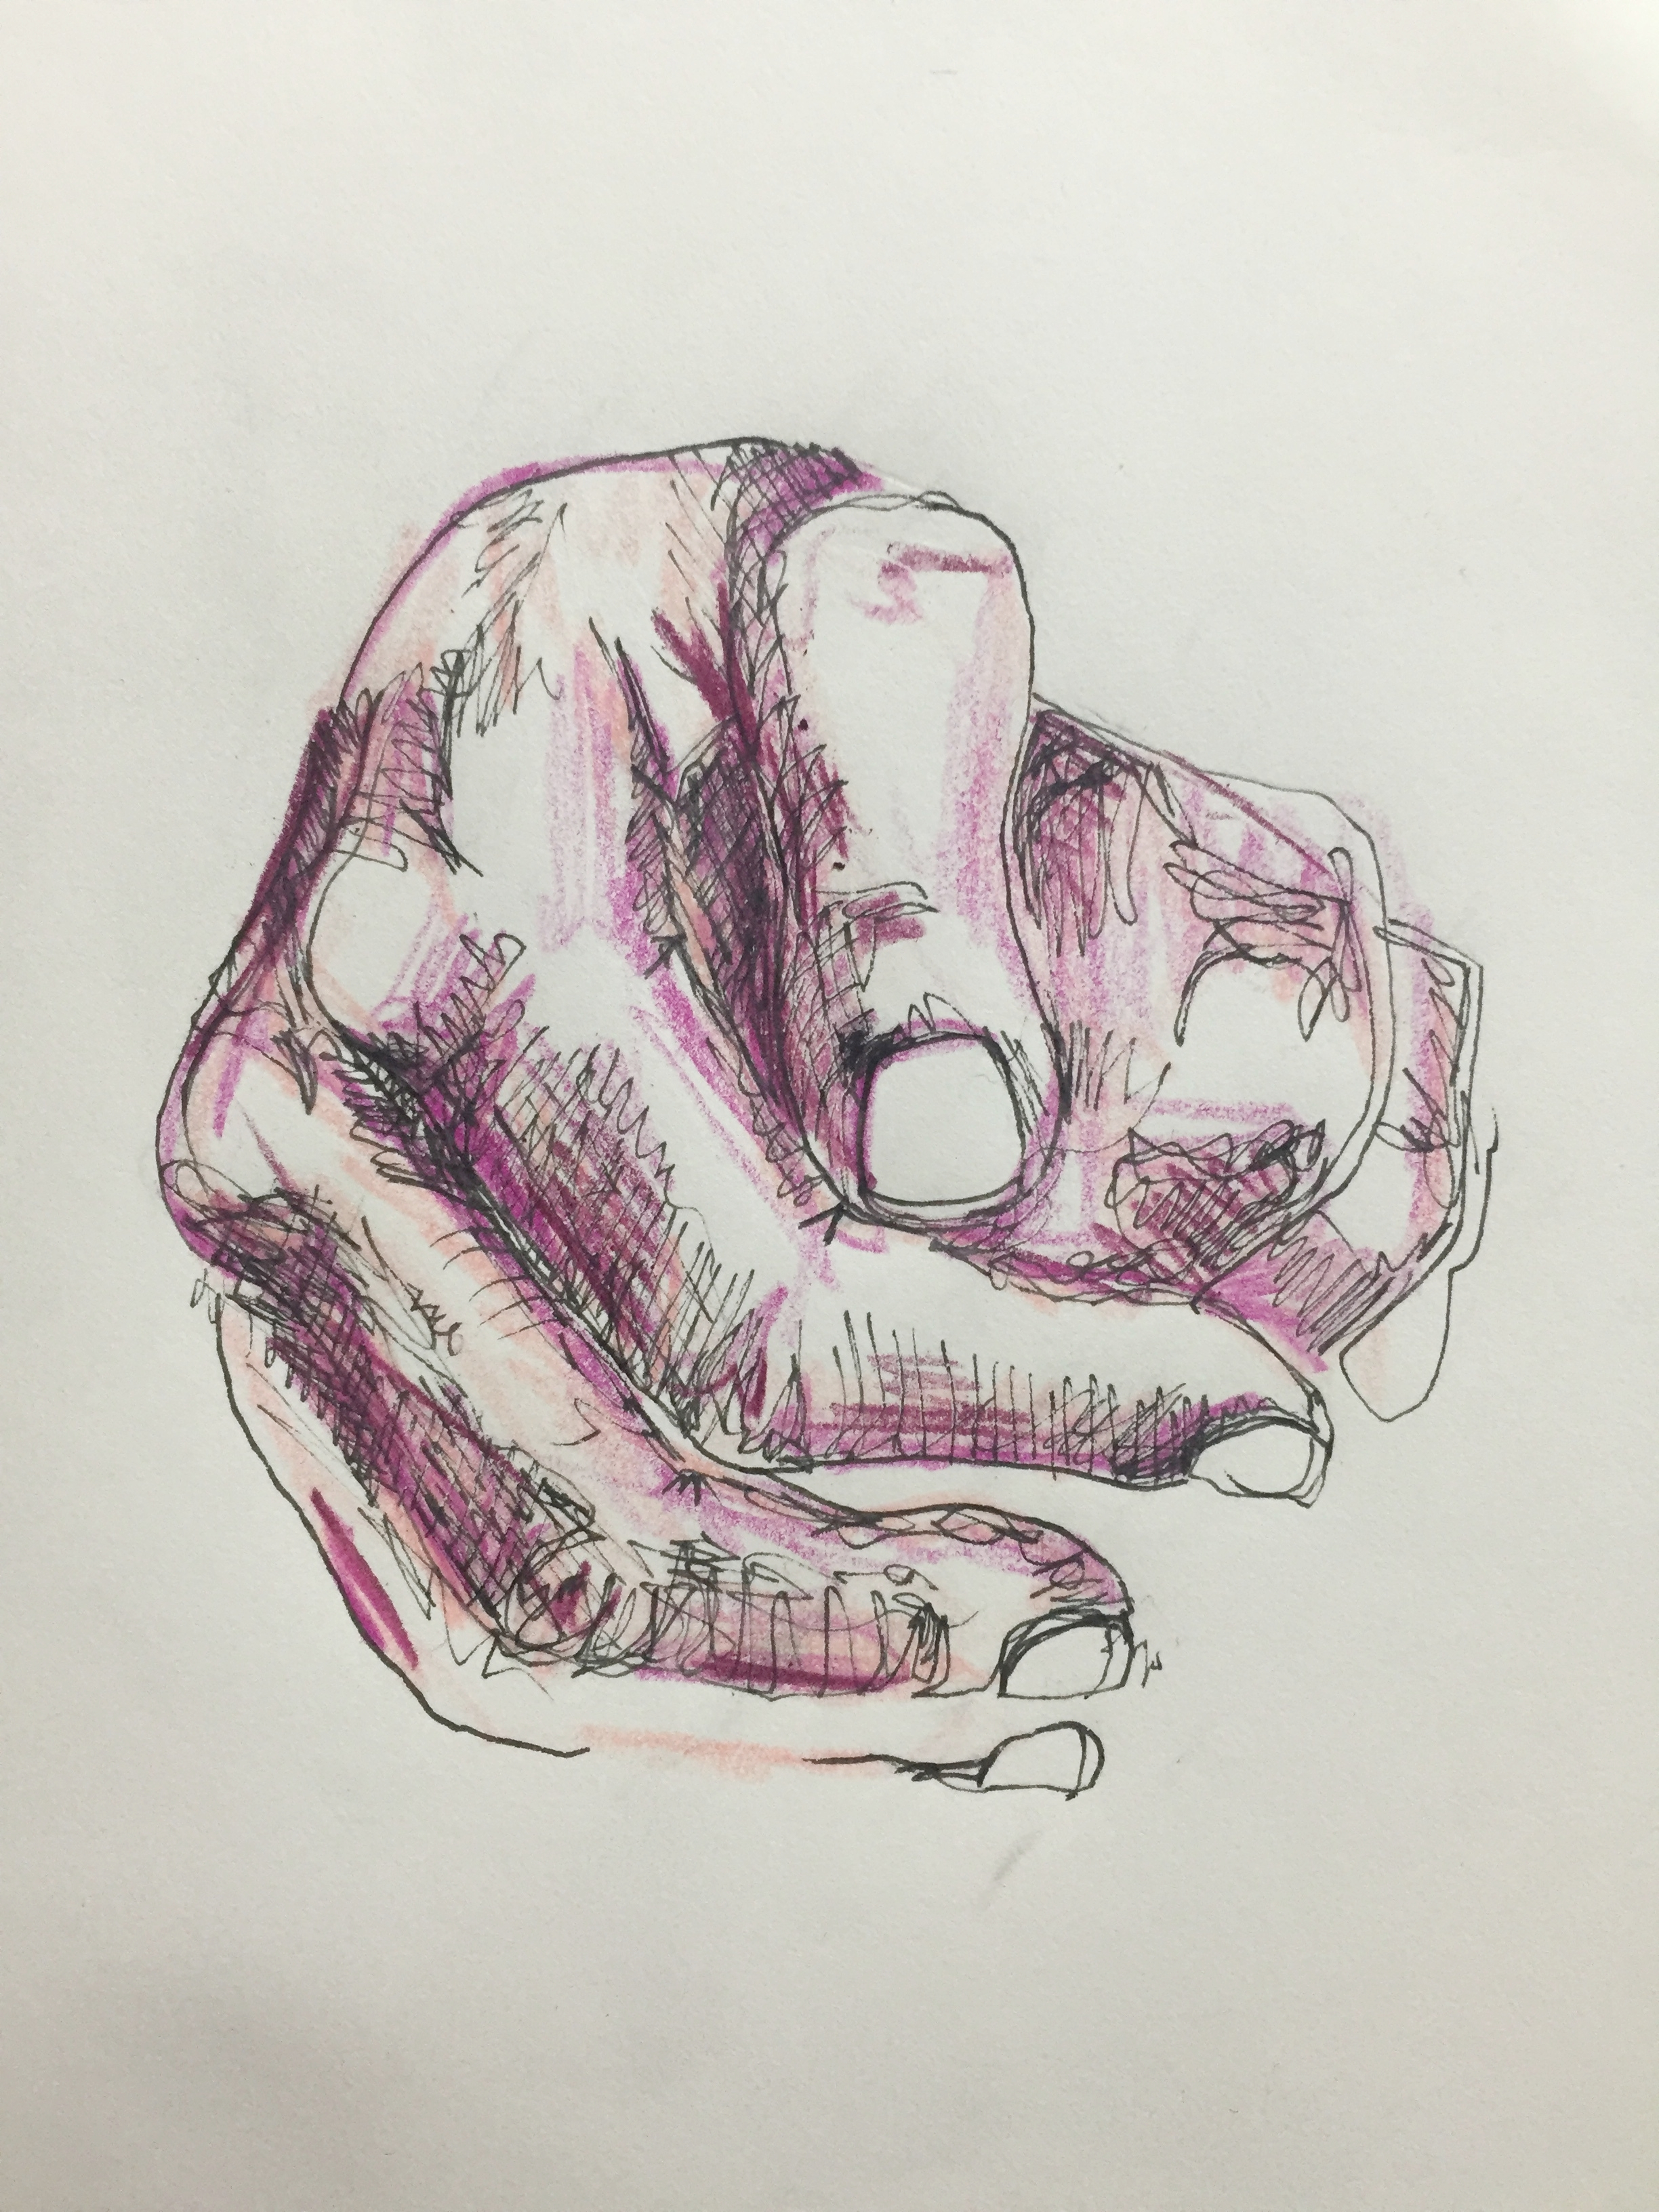 Life study, pen and pencil crayon on paper, 2016